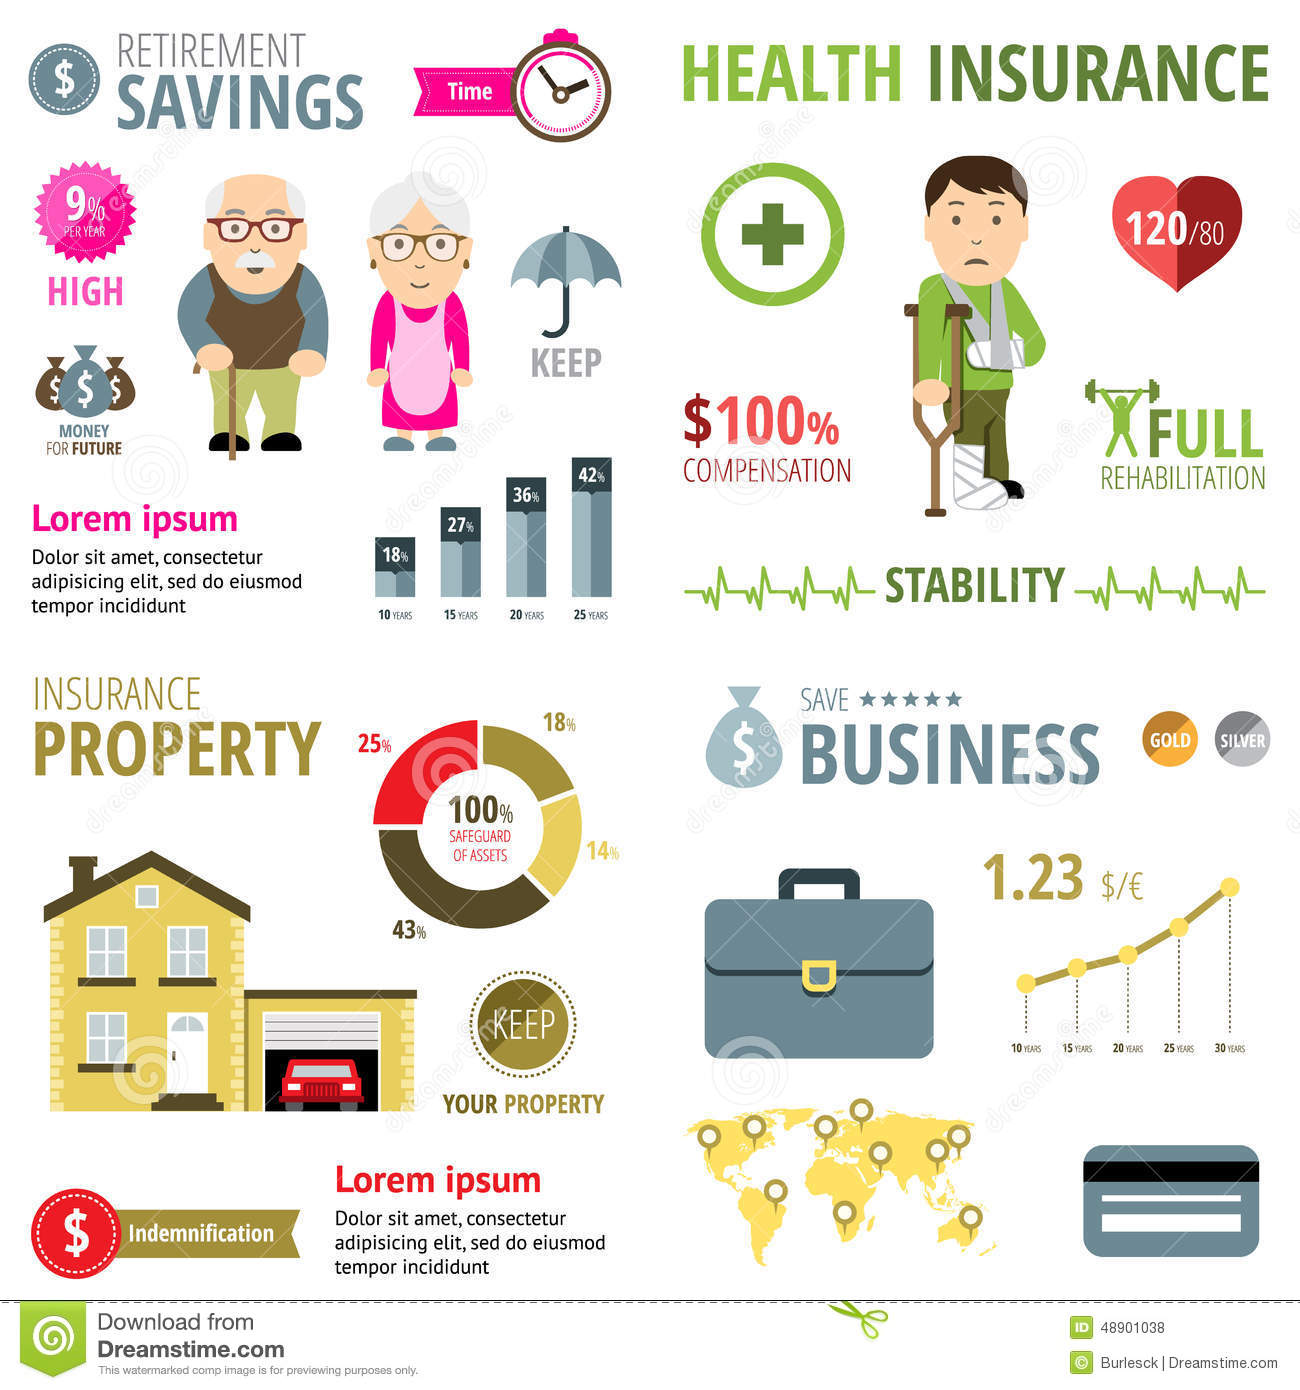 Insurance Infographic Stock Vector - Image: 48901038